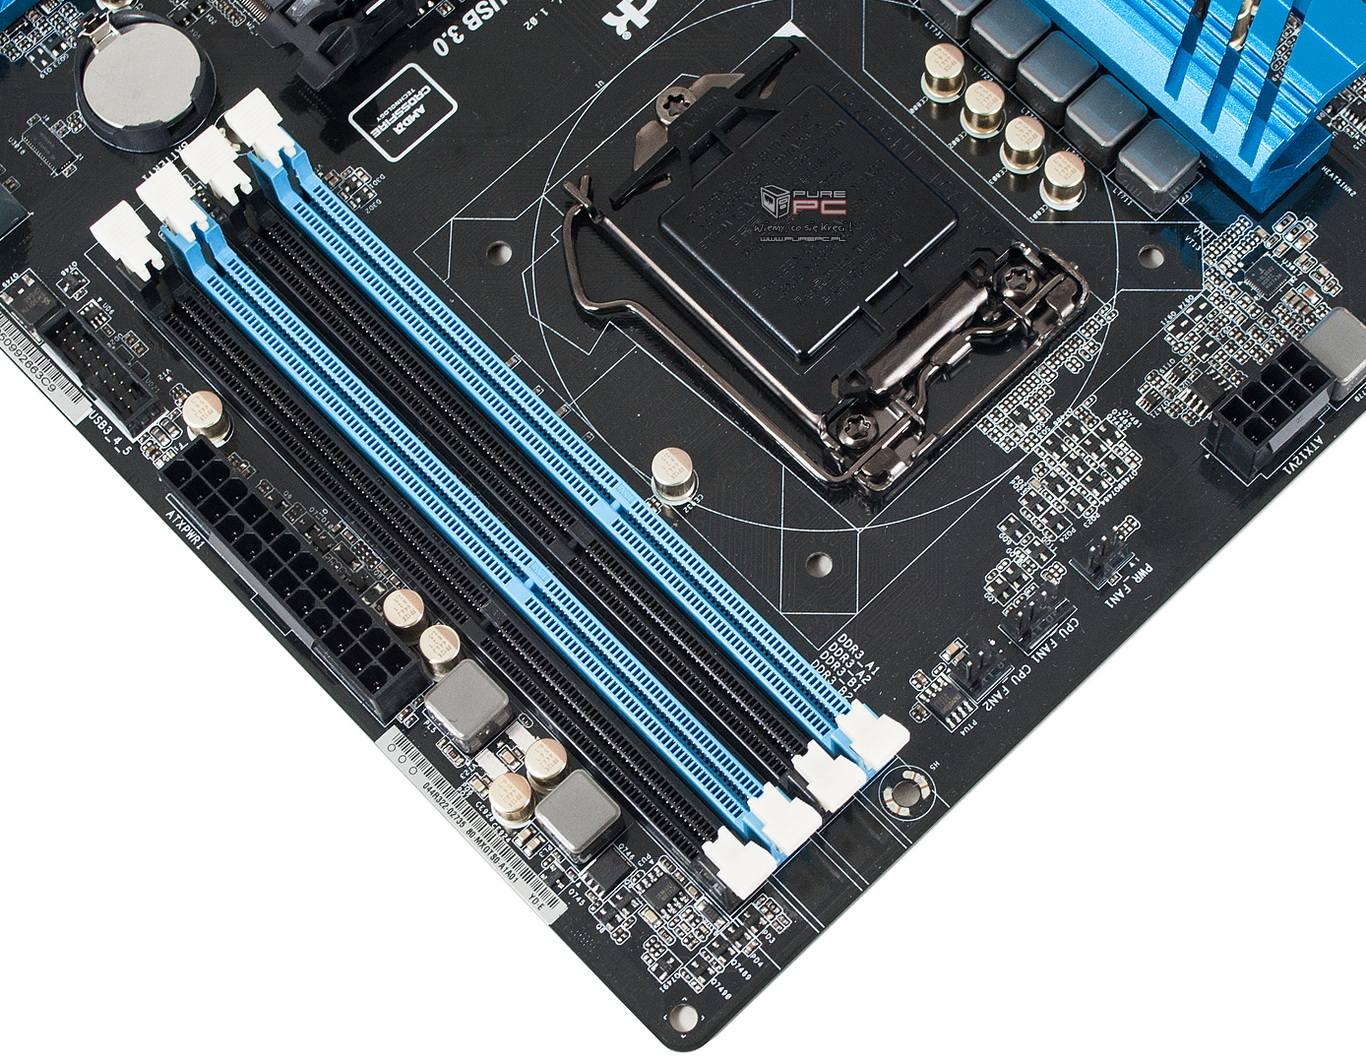 ASRock Z97M Pro4 Realtek Audio Windows 8 X64